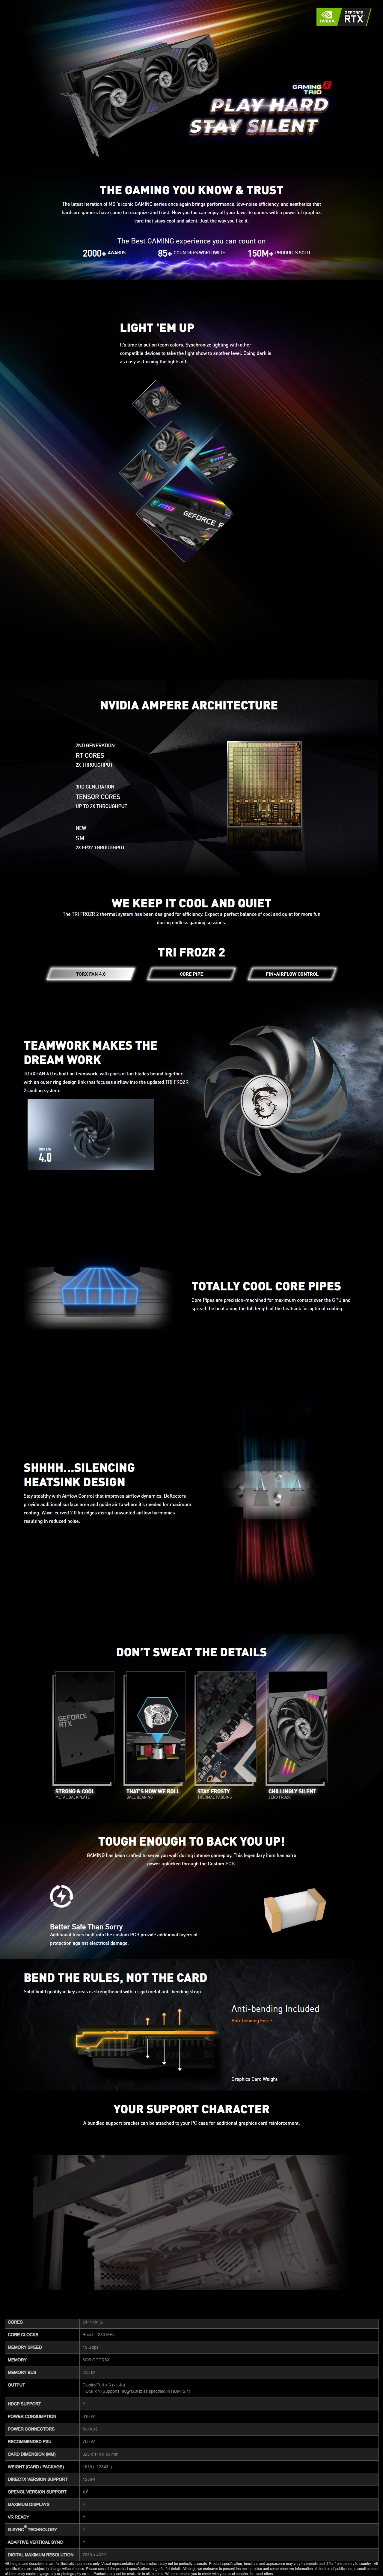 A large marketing image providing additional information about the product MSI GeForce RTX 3070 Ti Gaming X Trio 8GB GDDR6X - Additional alt info not provided